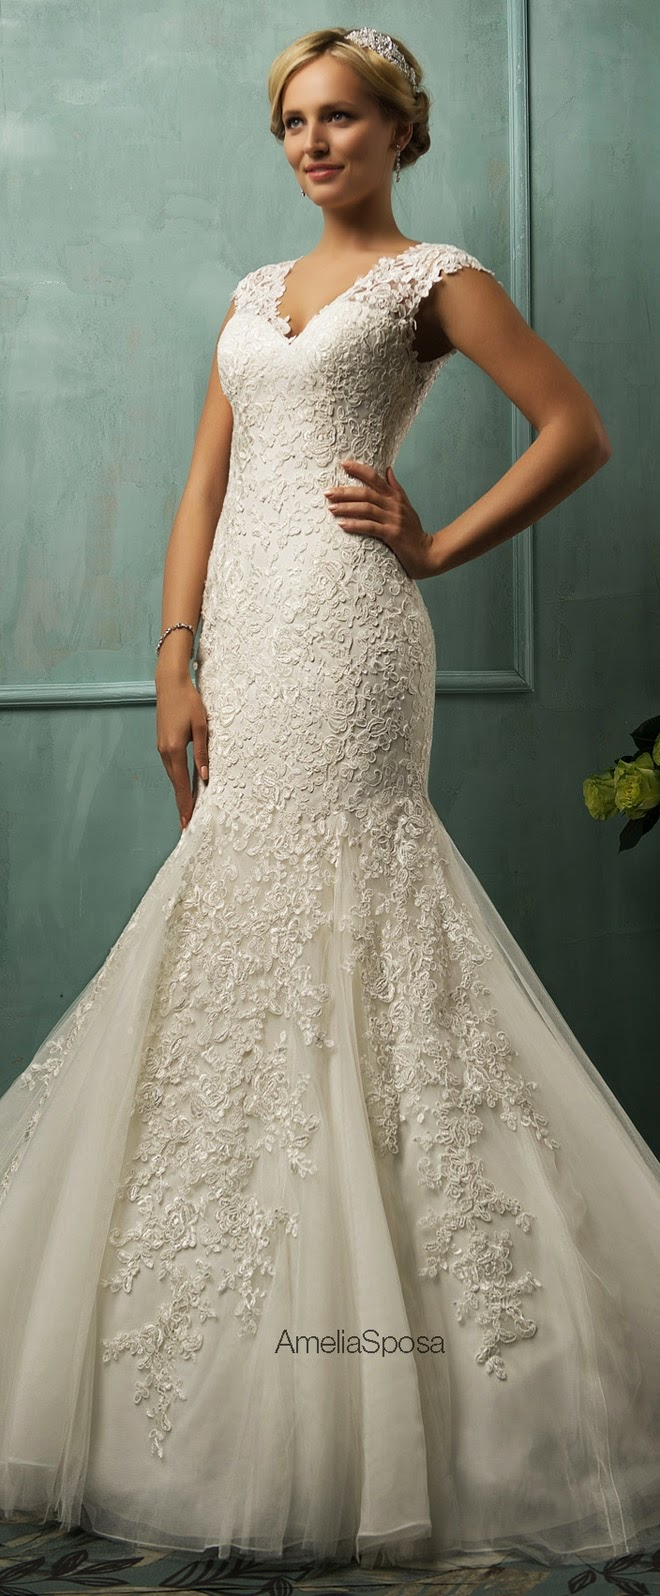 amelia-sposa-wedding-dresses-7-11212014nz